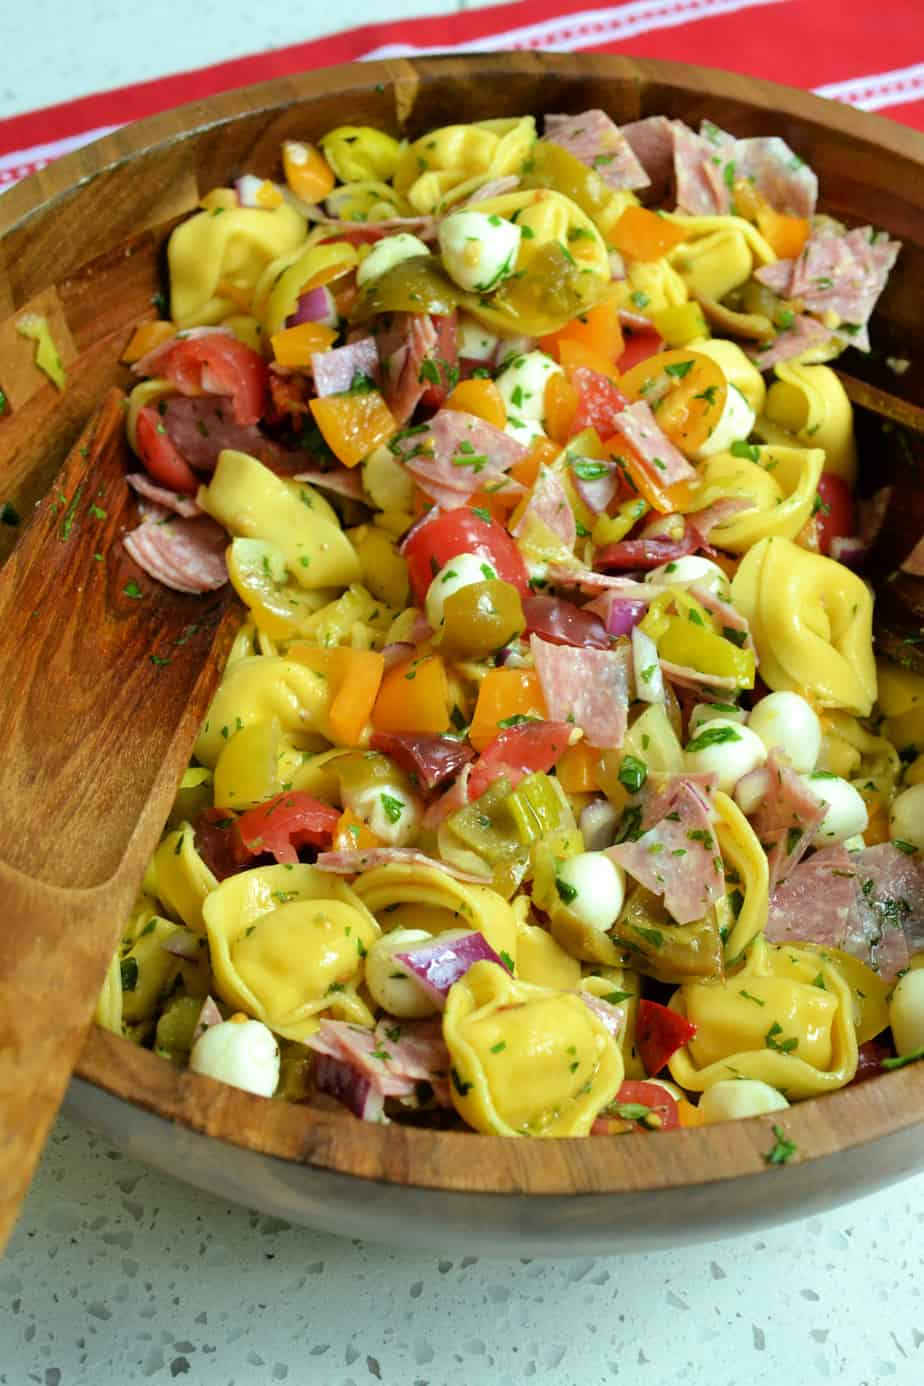 Italian Tortellini Pasta with tomatoes, bell peppers, mozzarella, and pepperoncini.